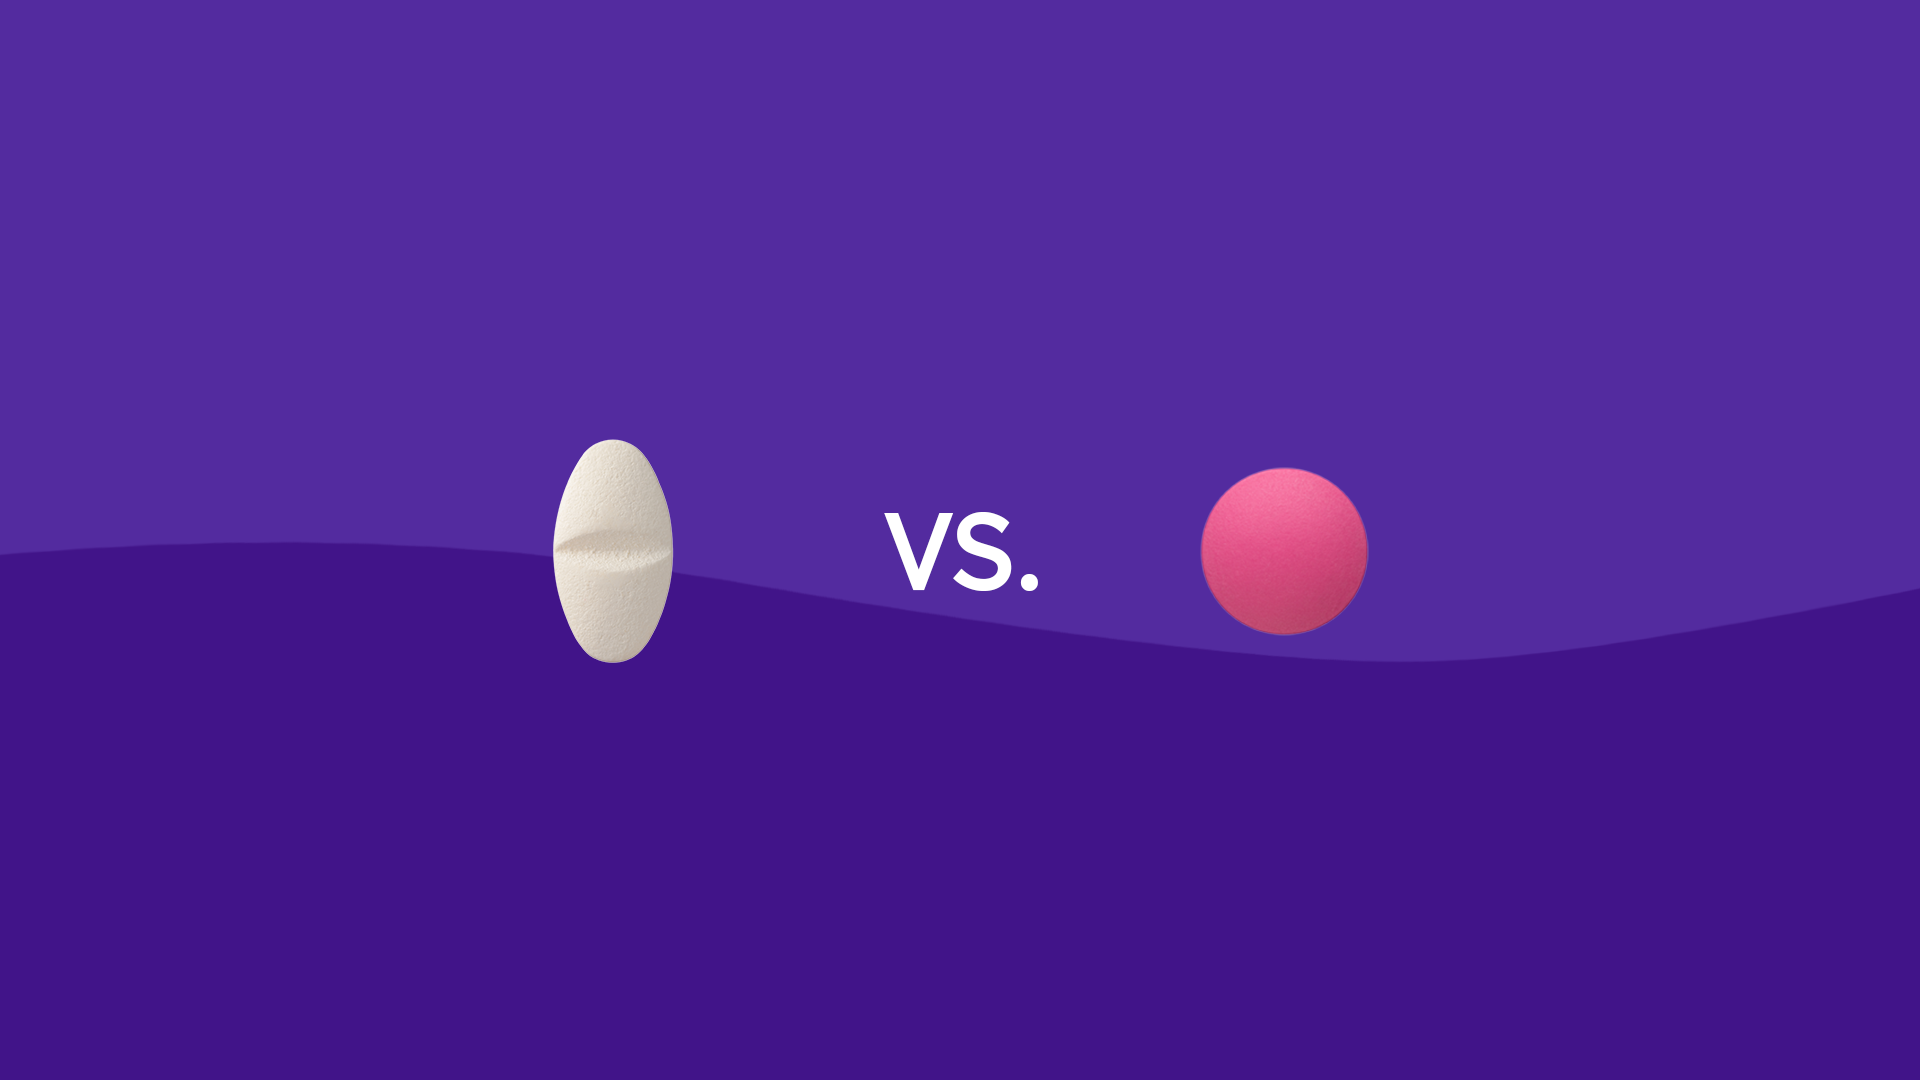 Acetaminophen vs. ibuprofen: Differences, similarities, and which is better for you